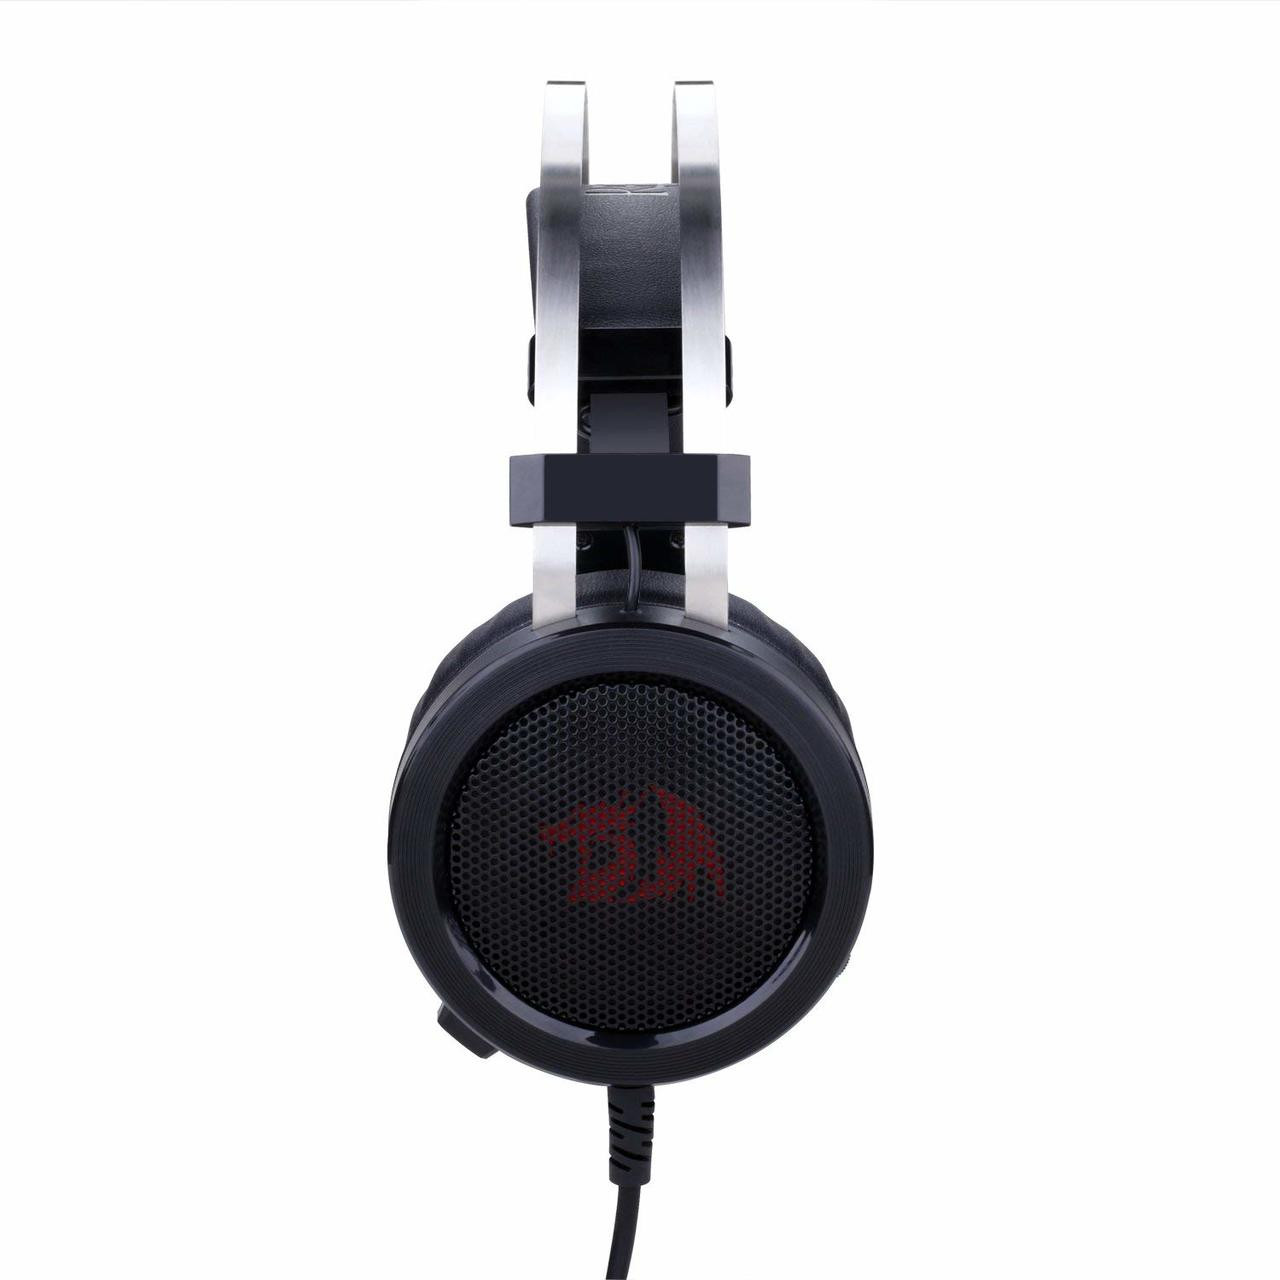 dfd26decc618d5 Redragon H901 Gaming Headset Microphone PC, PC Gaming Headphones Mic  Built-in Noise Reduction